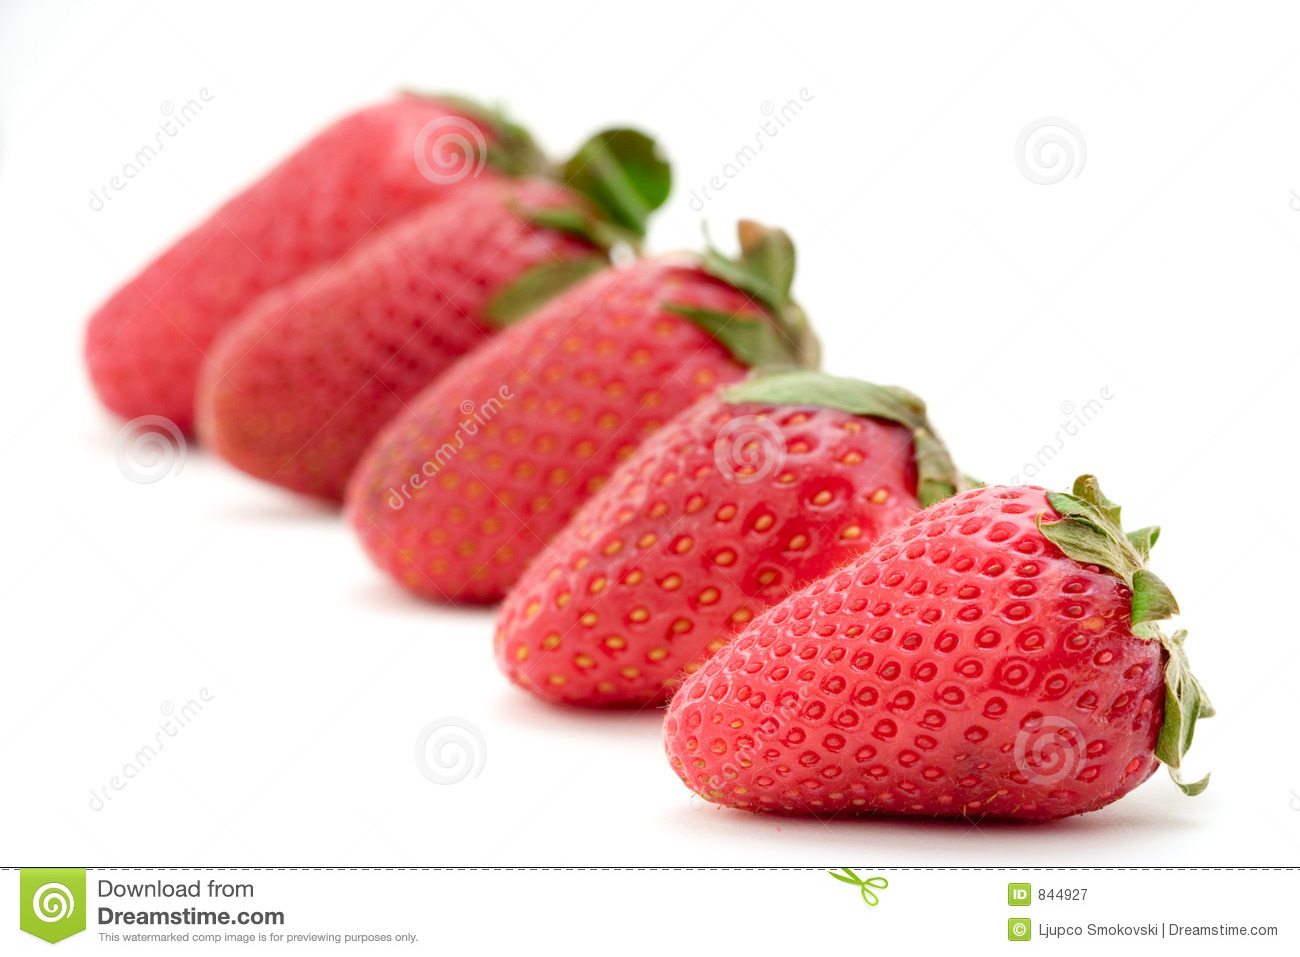 Strawberries lined up